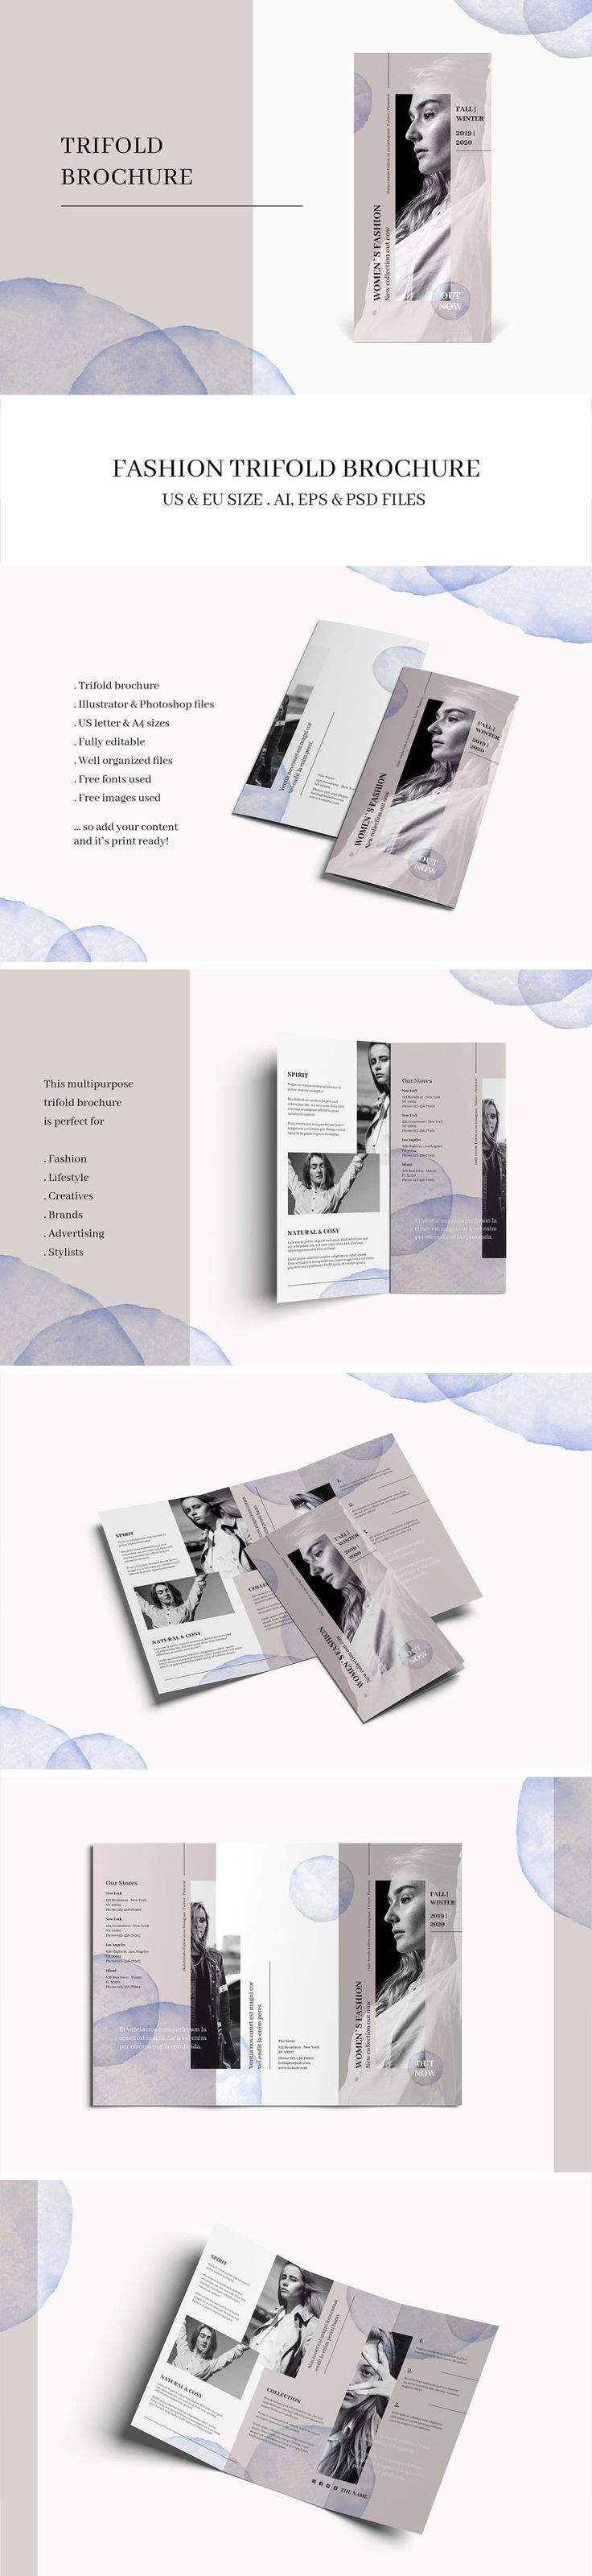 Brochures can still be relevant in this day and age. From fashion models to product launches, a print pamphlet can sometimes mean more